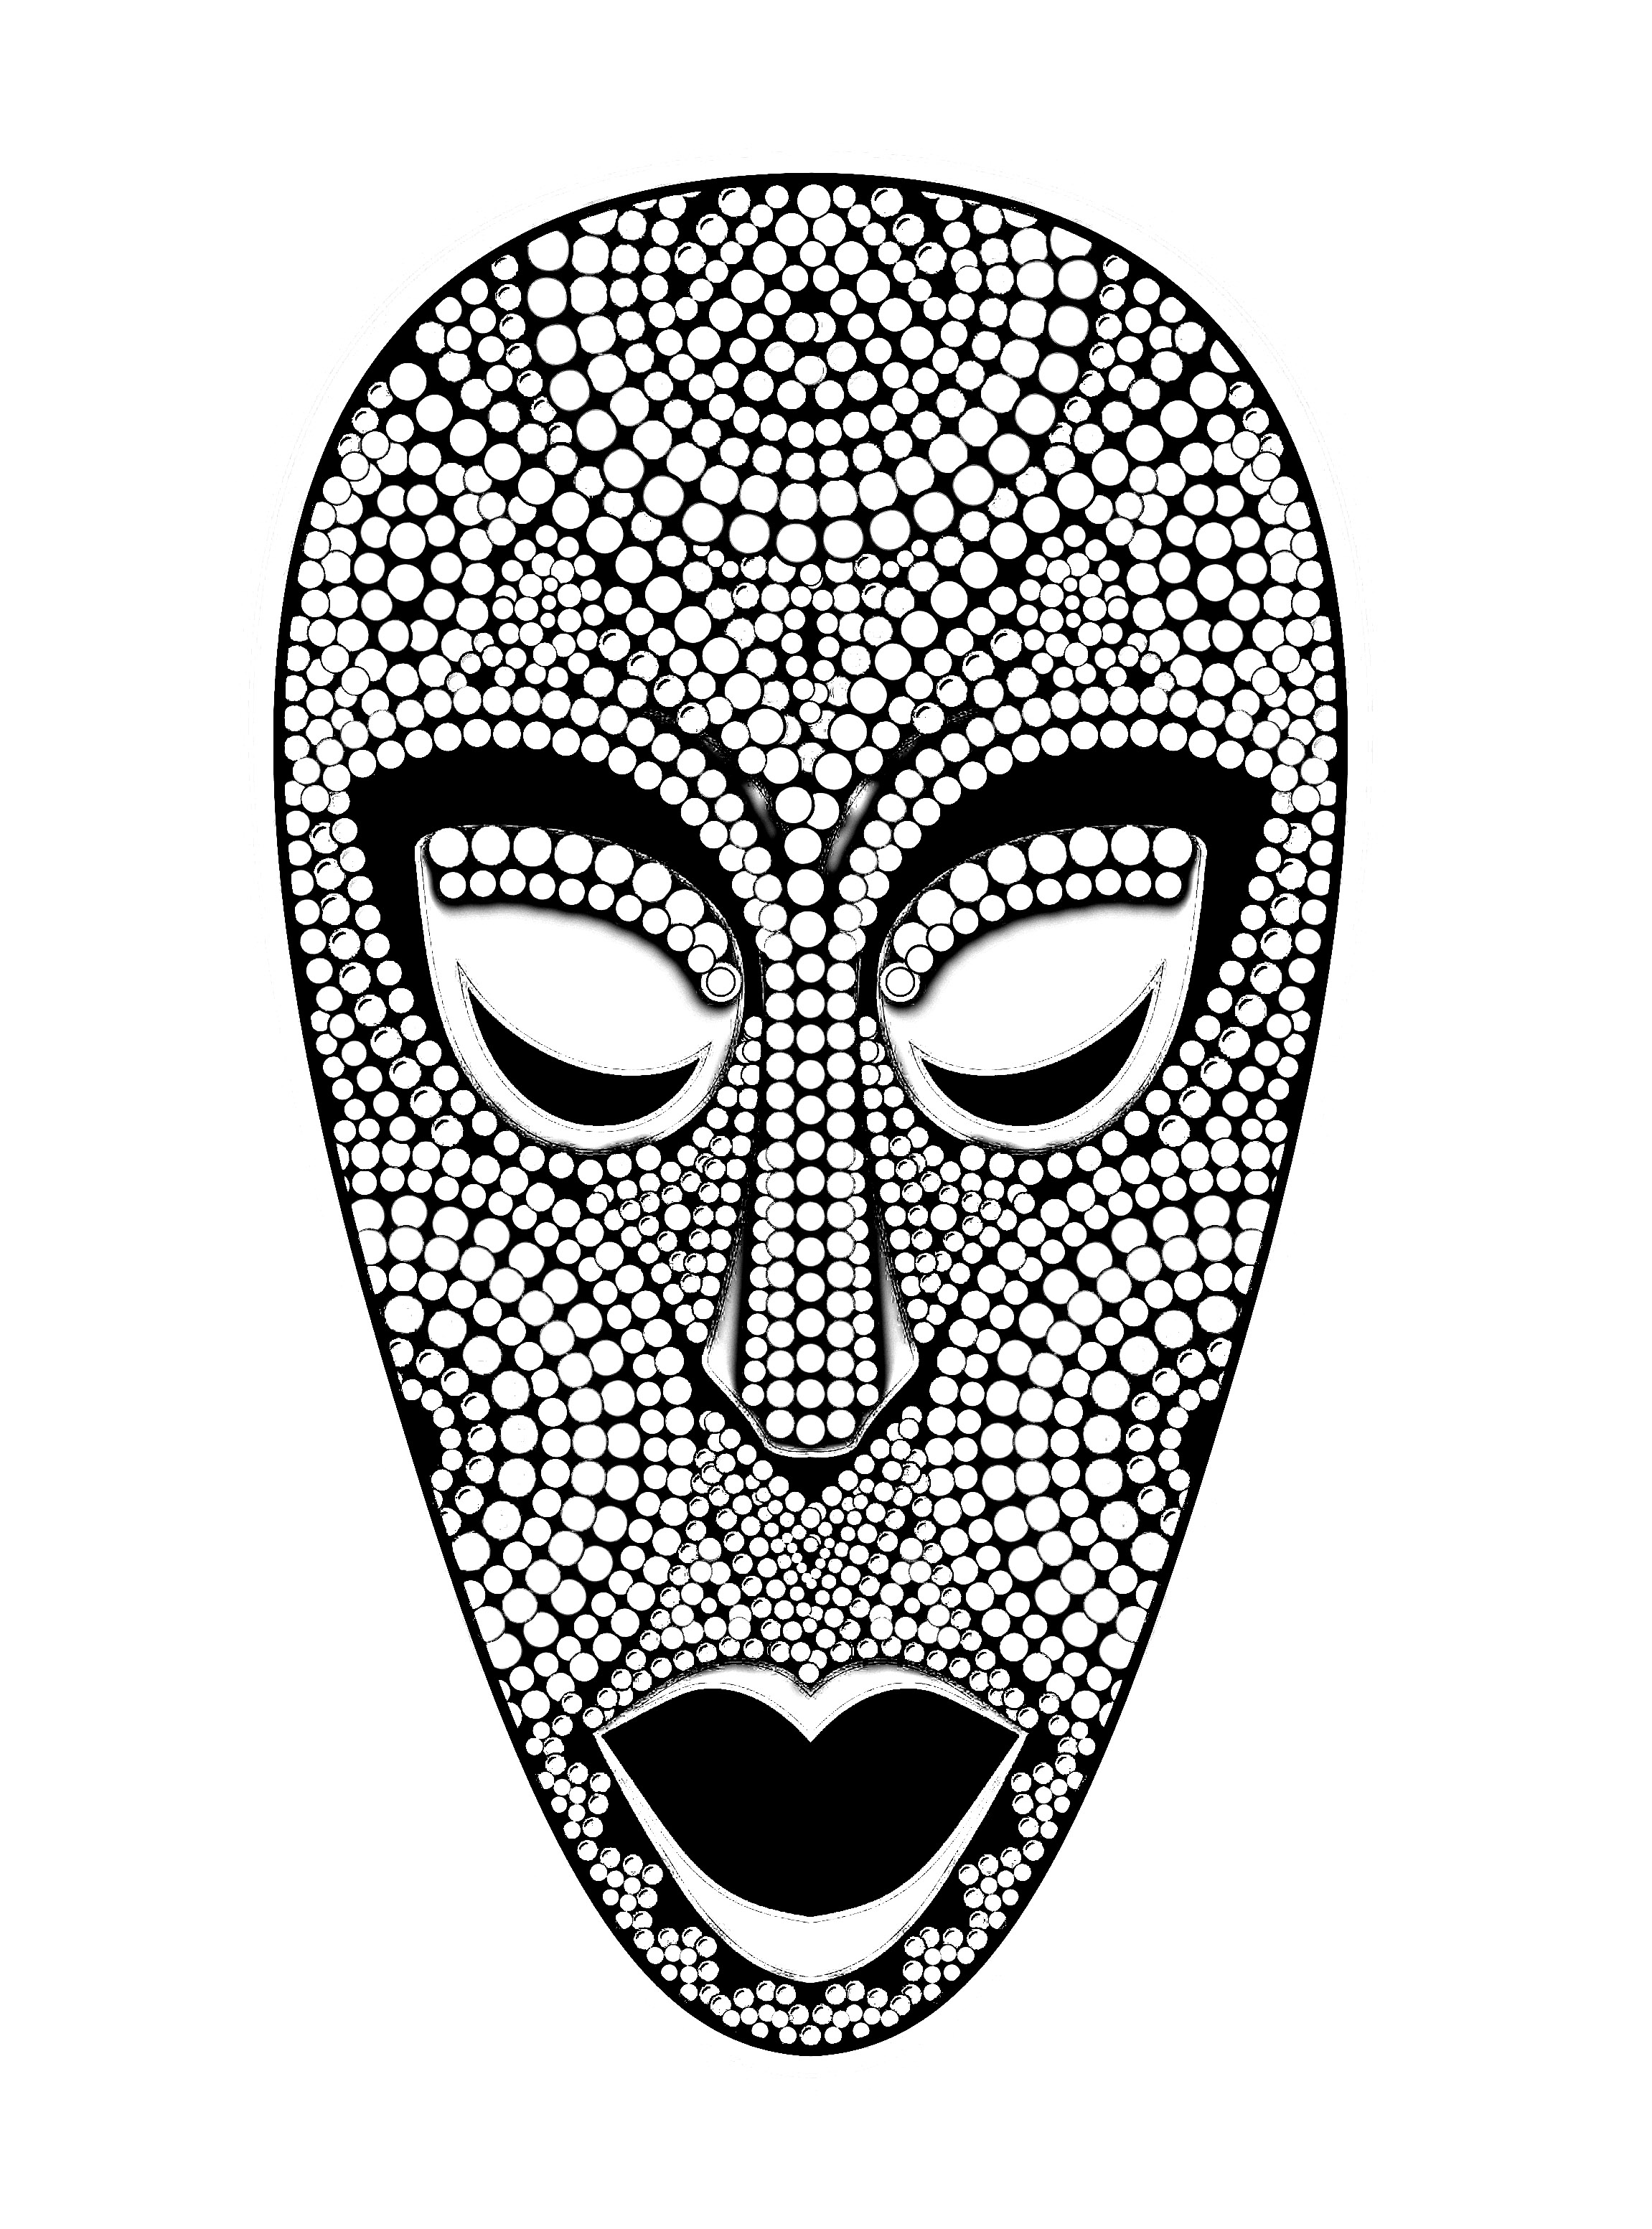 Coloring picture of an impressive African mask